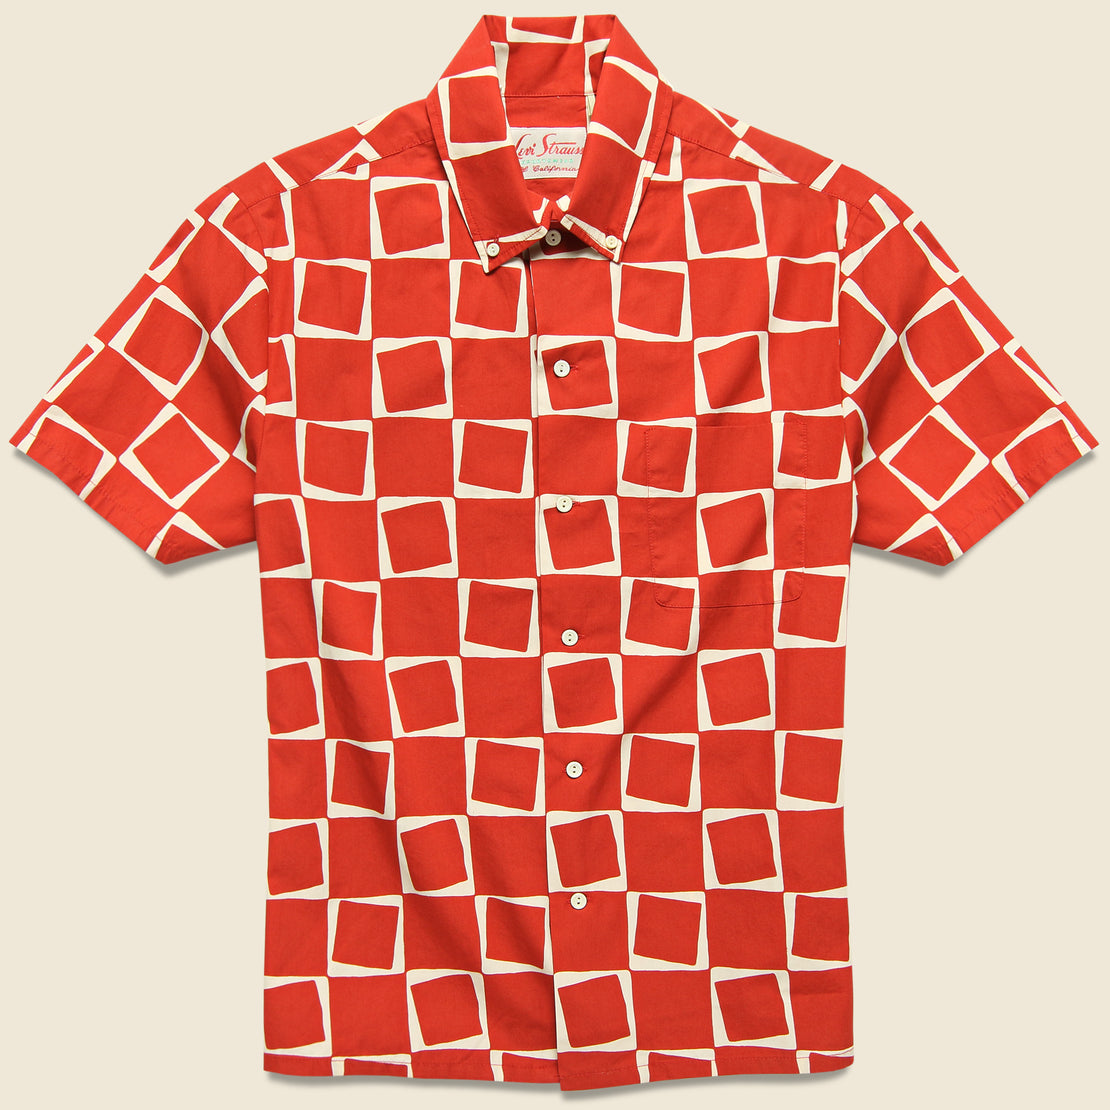 Levis Vintage Clothing 1950s Atomic Square Print Shirt - Red